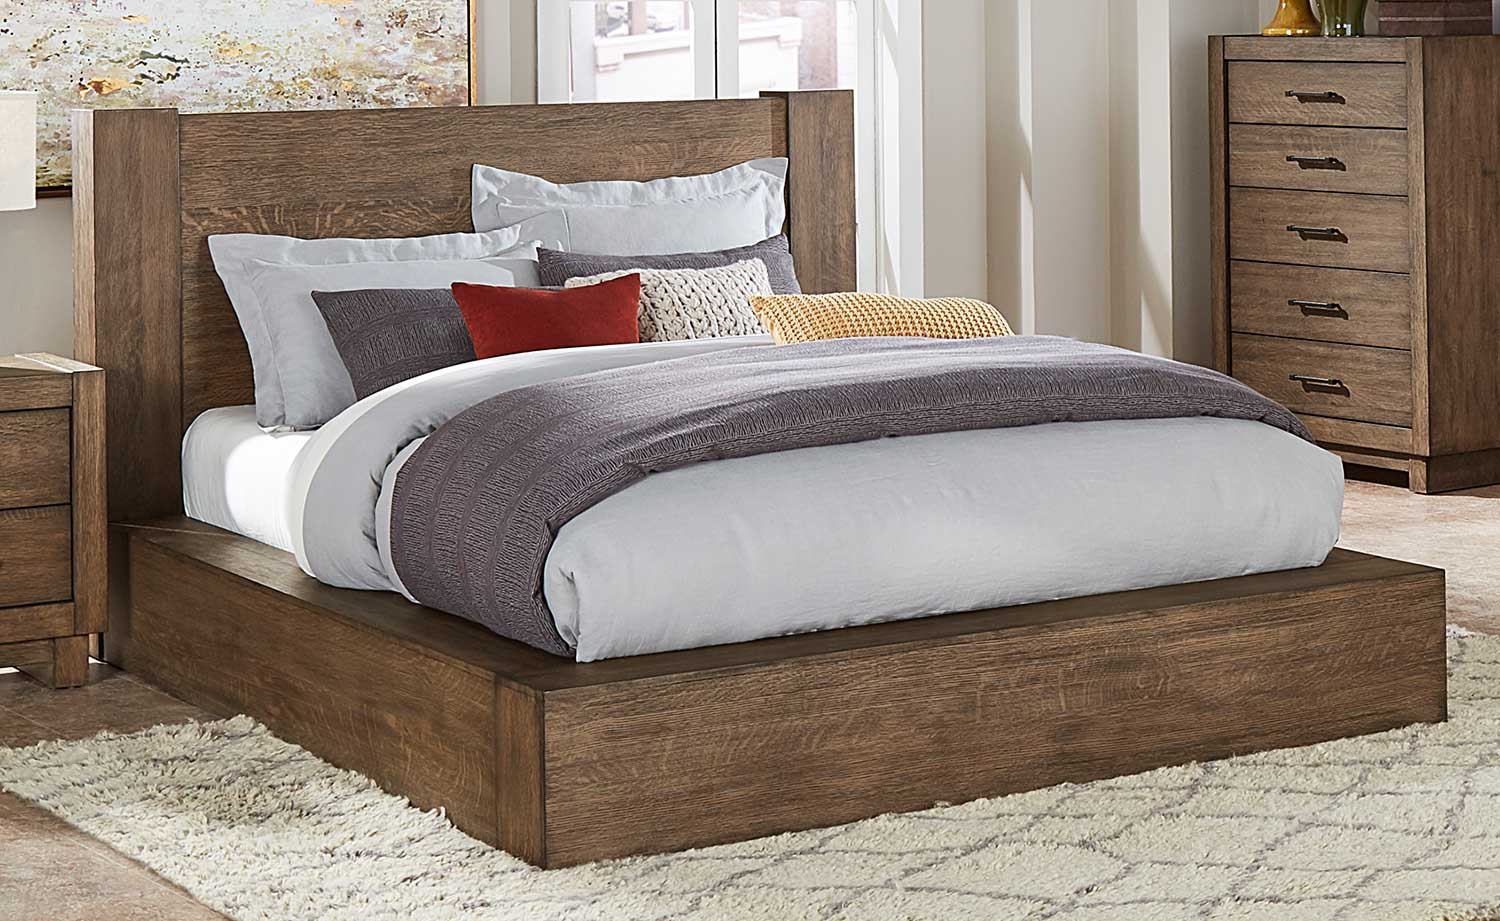 Homelegance Korlan Platform Bed - Brown Oak